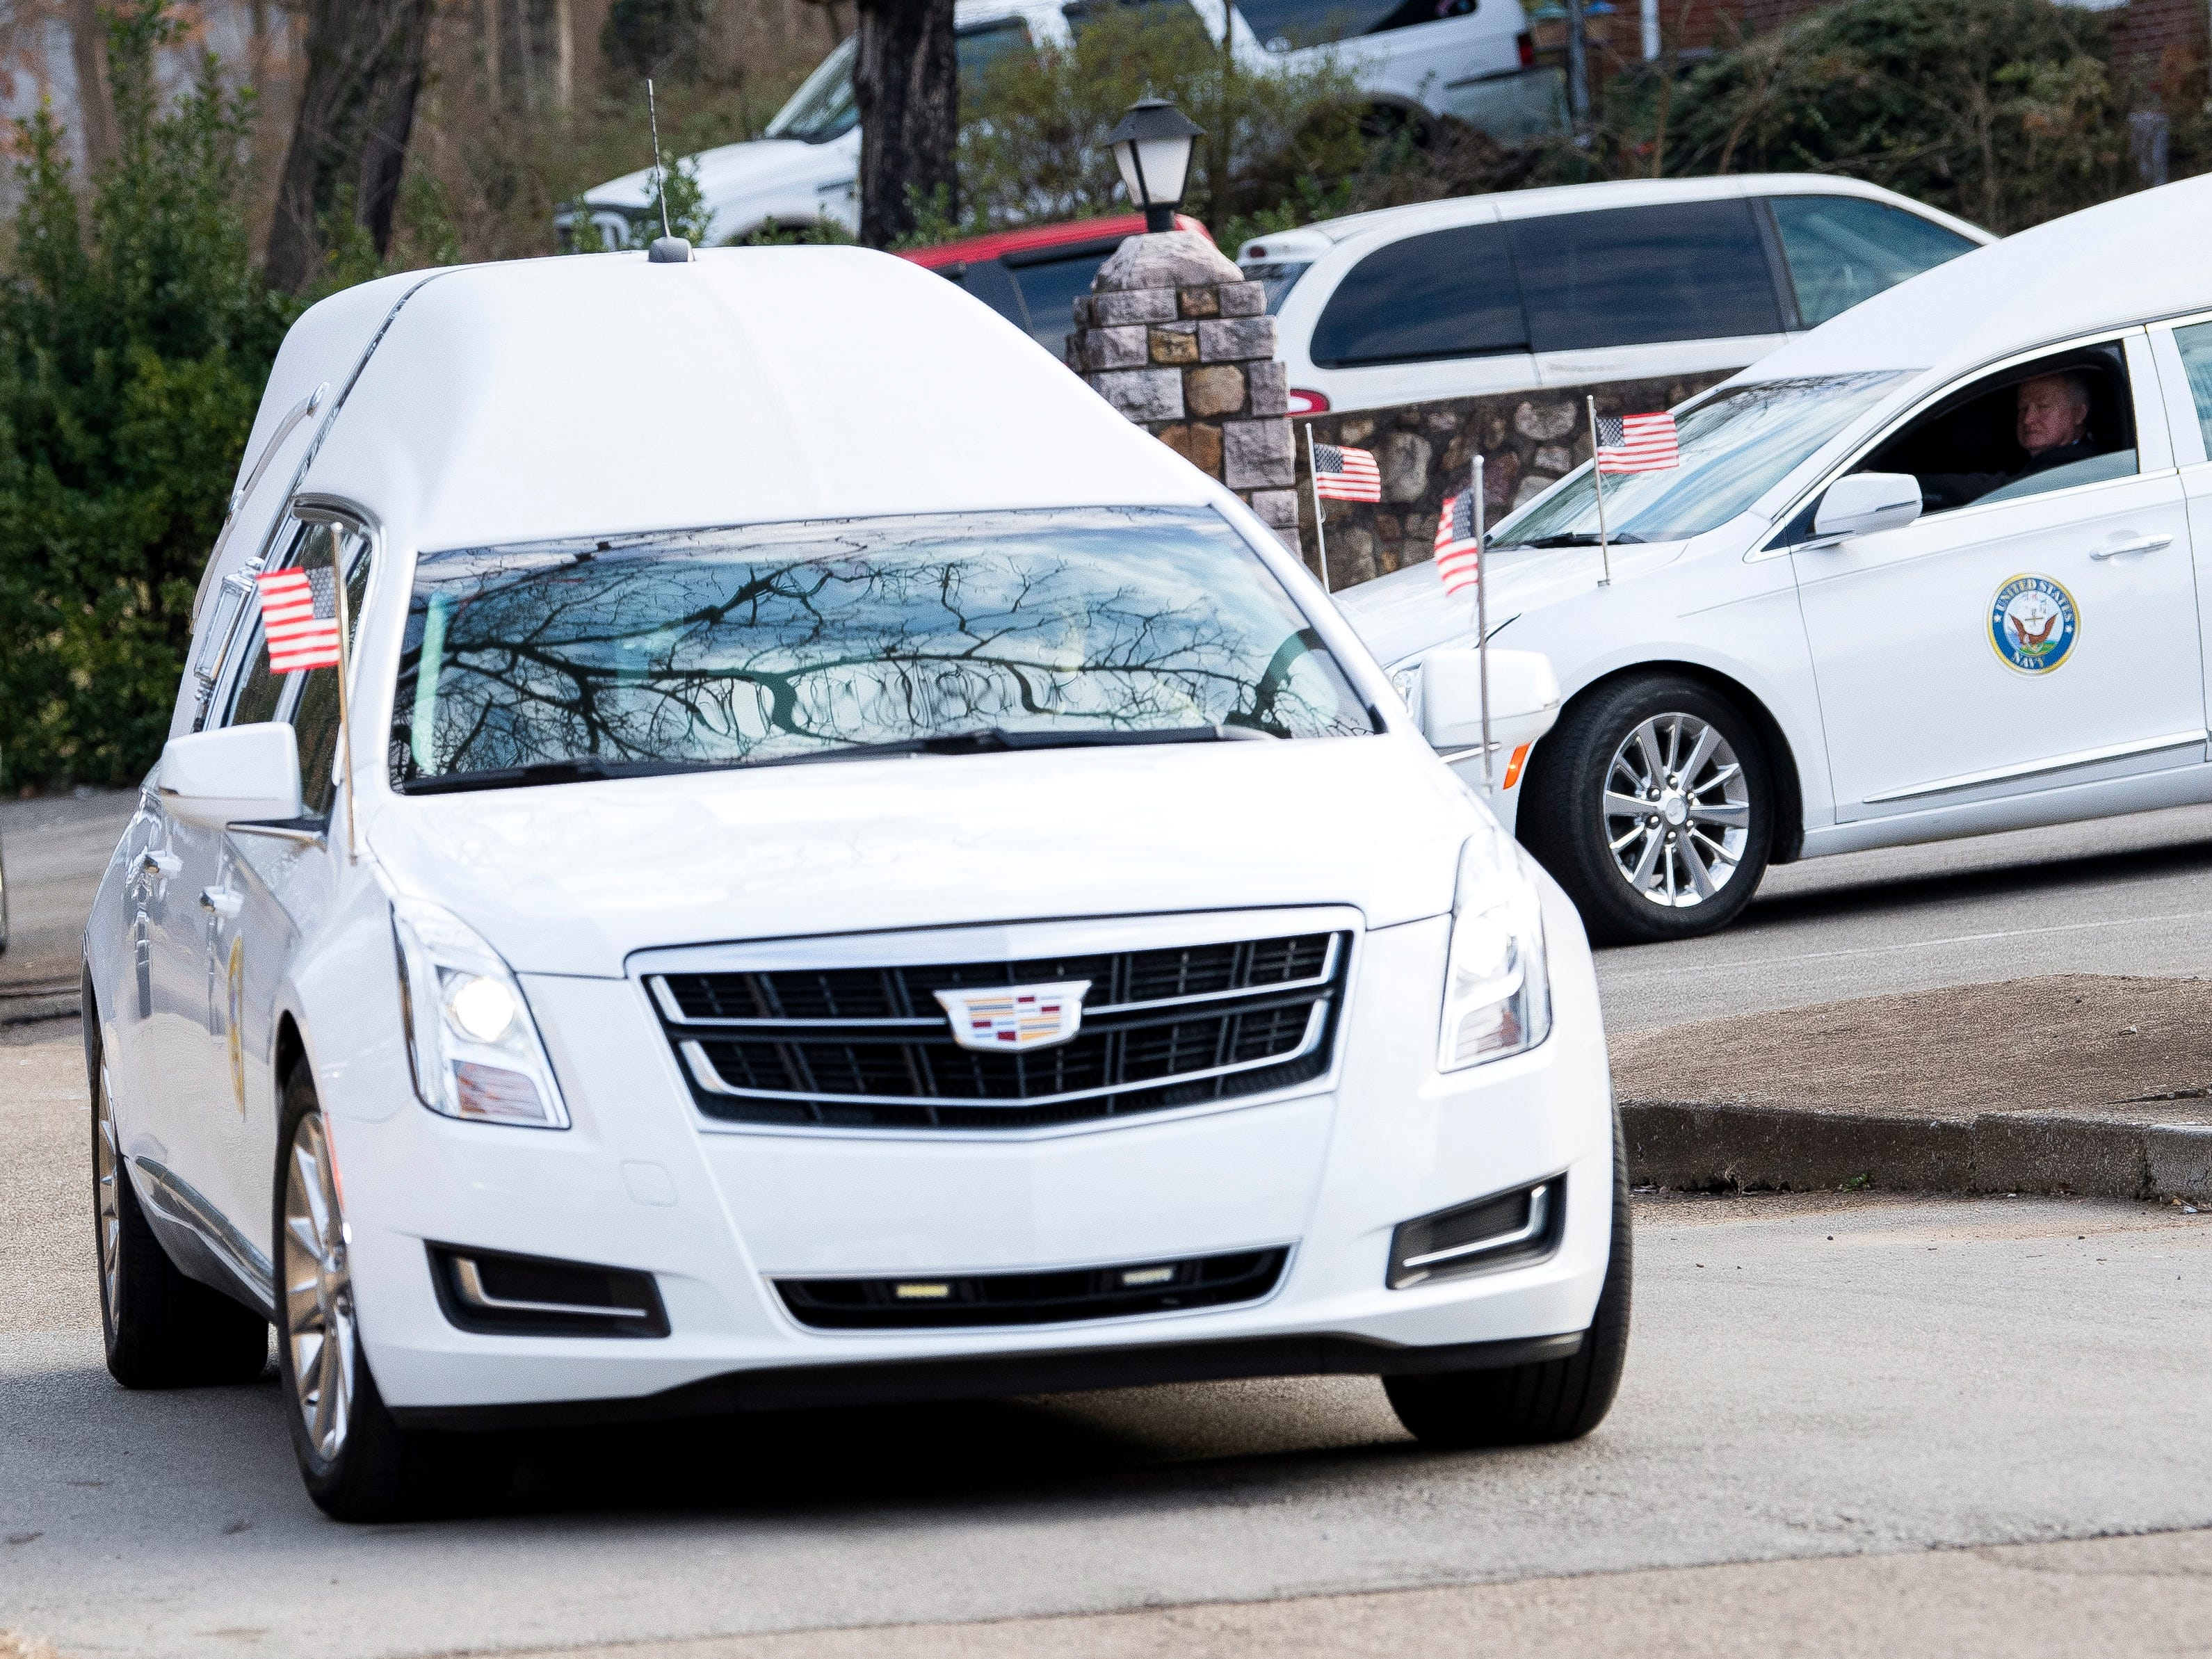 Hearses carrying the urns of seven East Tennessee veterans head toward the East Tennessee Veterans Cemetery on Gov. John Sevier Highway on Tuesday, February 5, 2019.